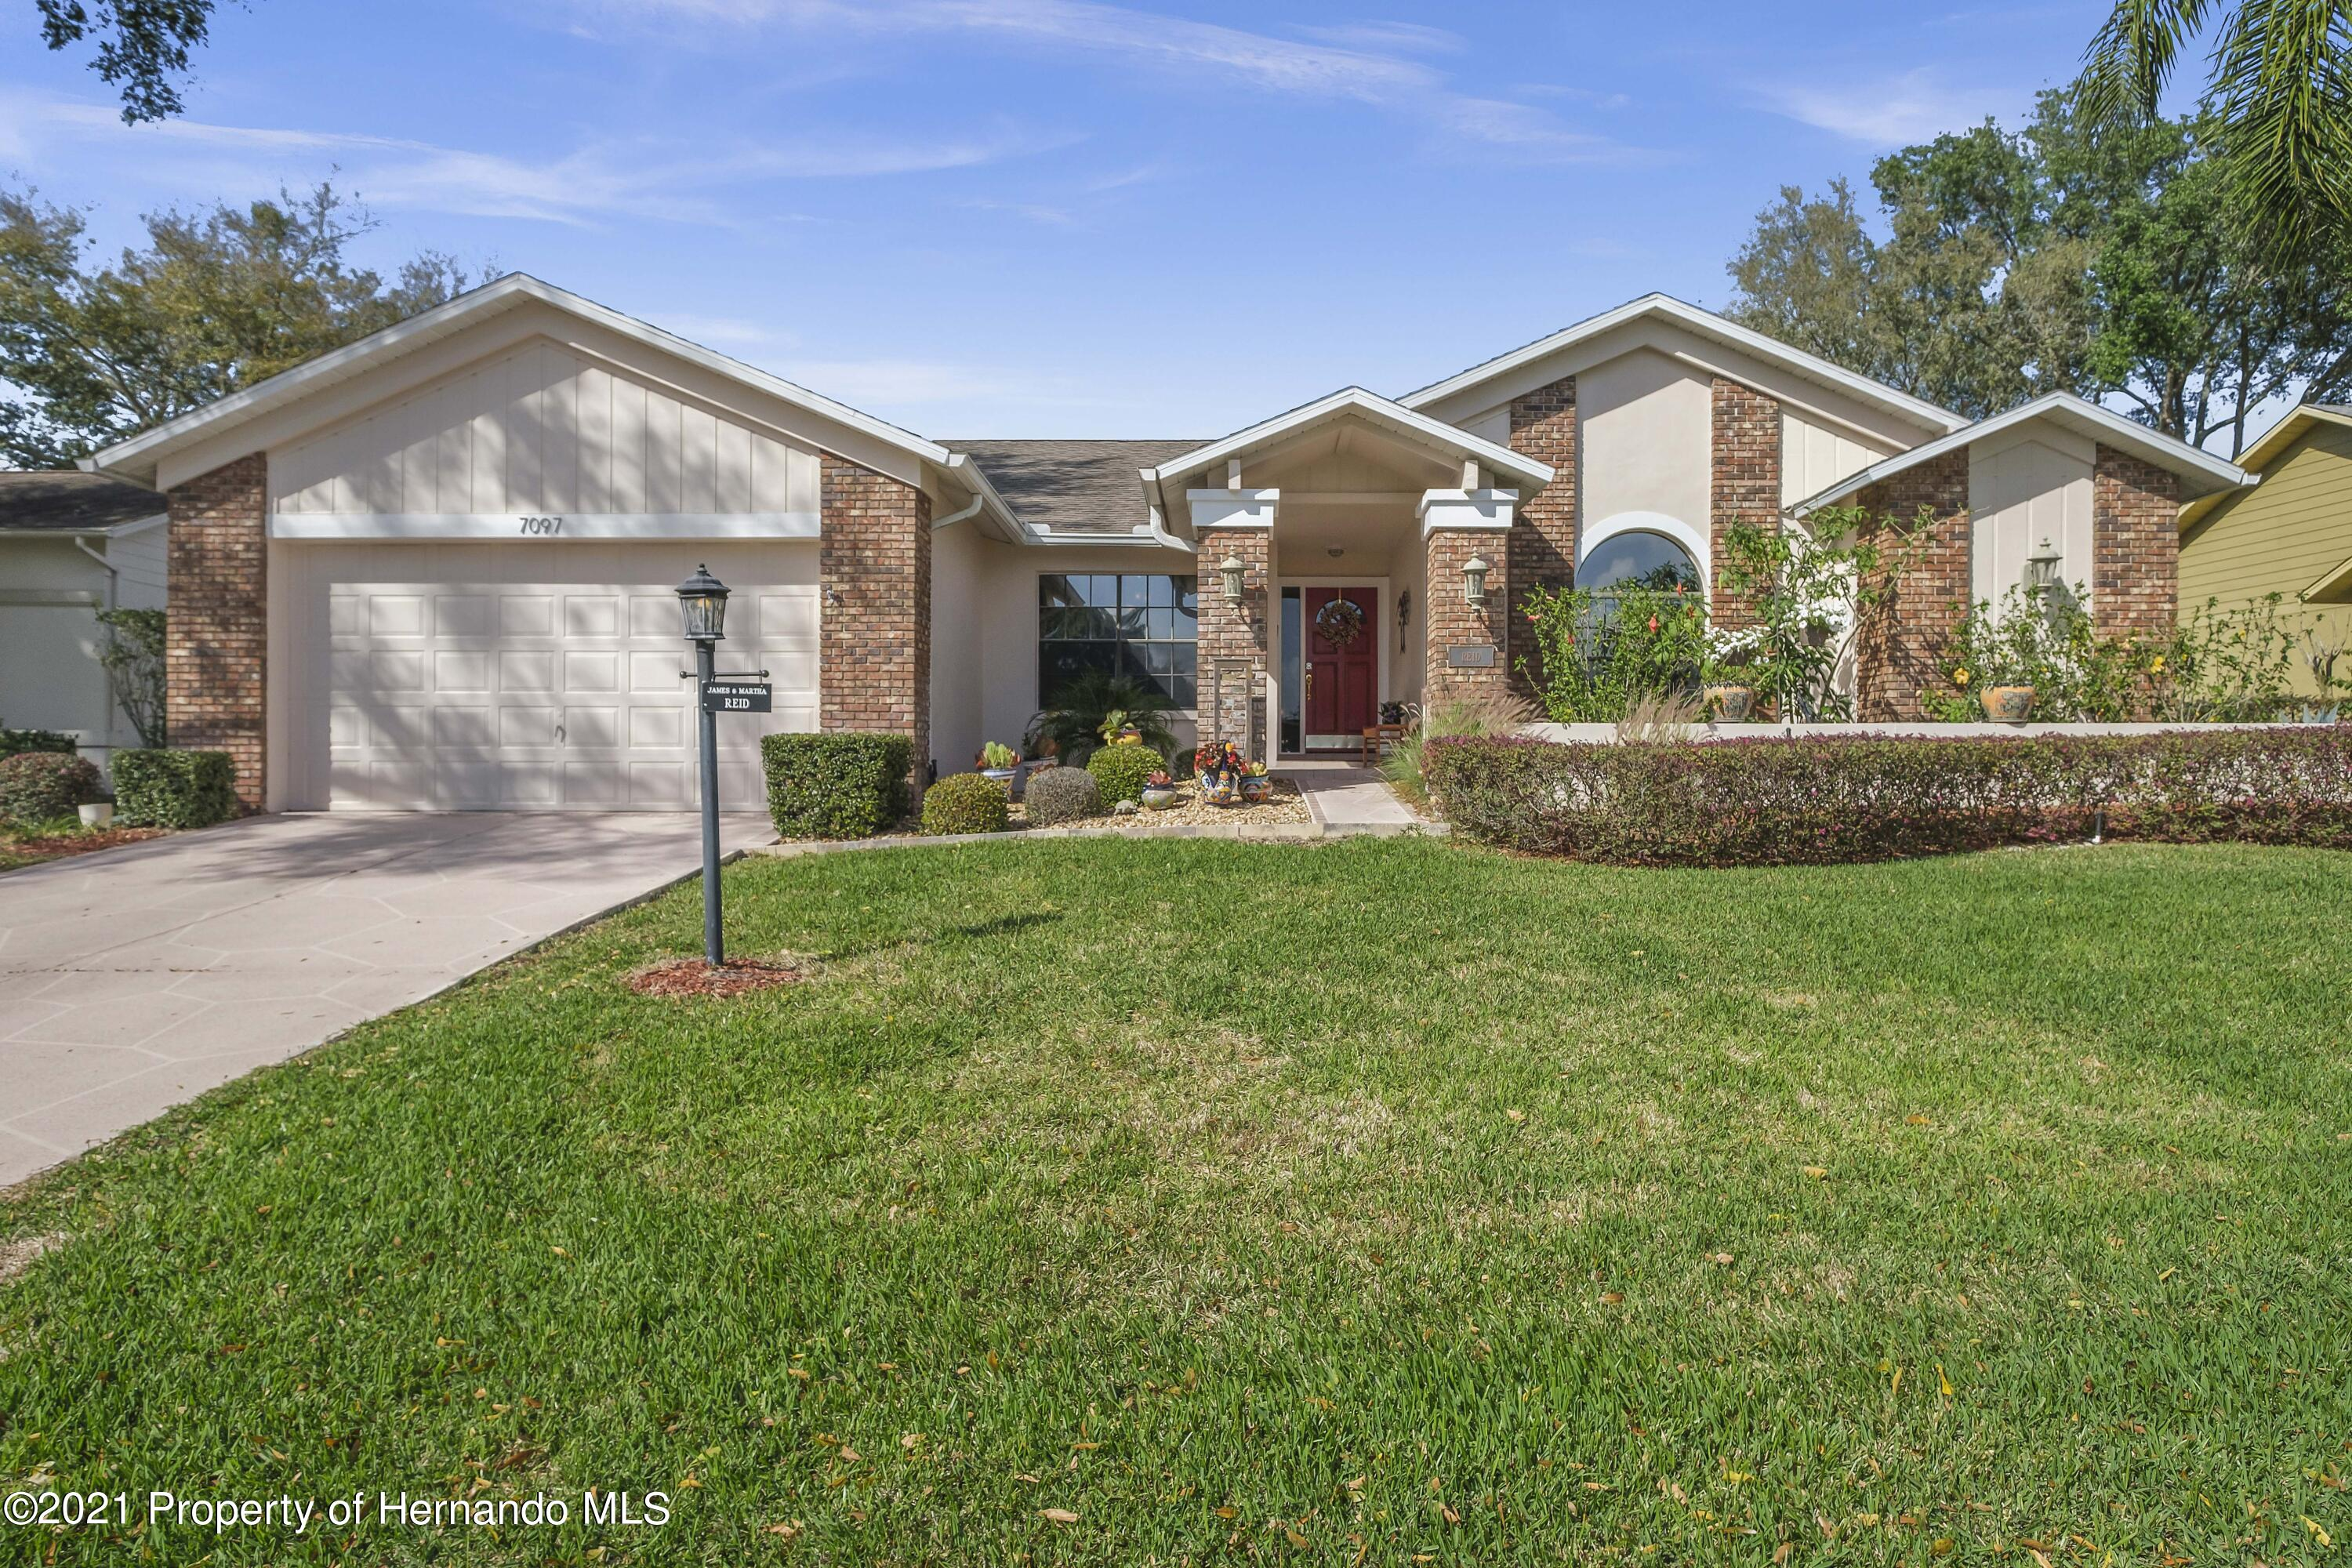 Details for 7097 Myrtlewood Lane, Spring Hill, FL 34606